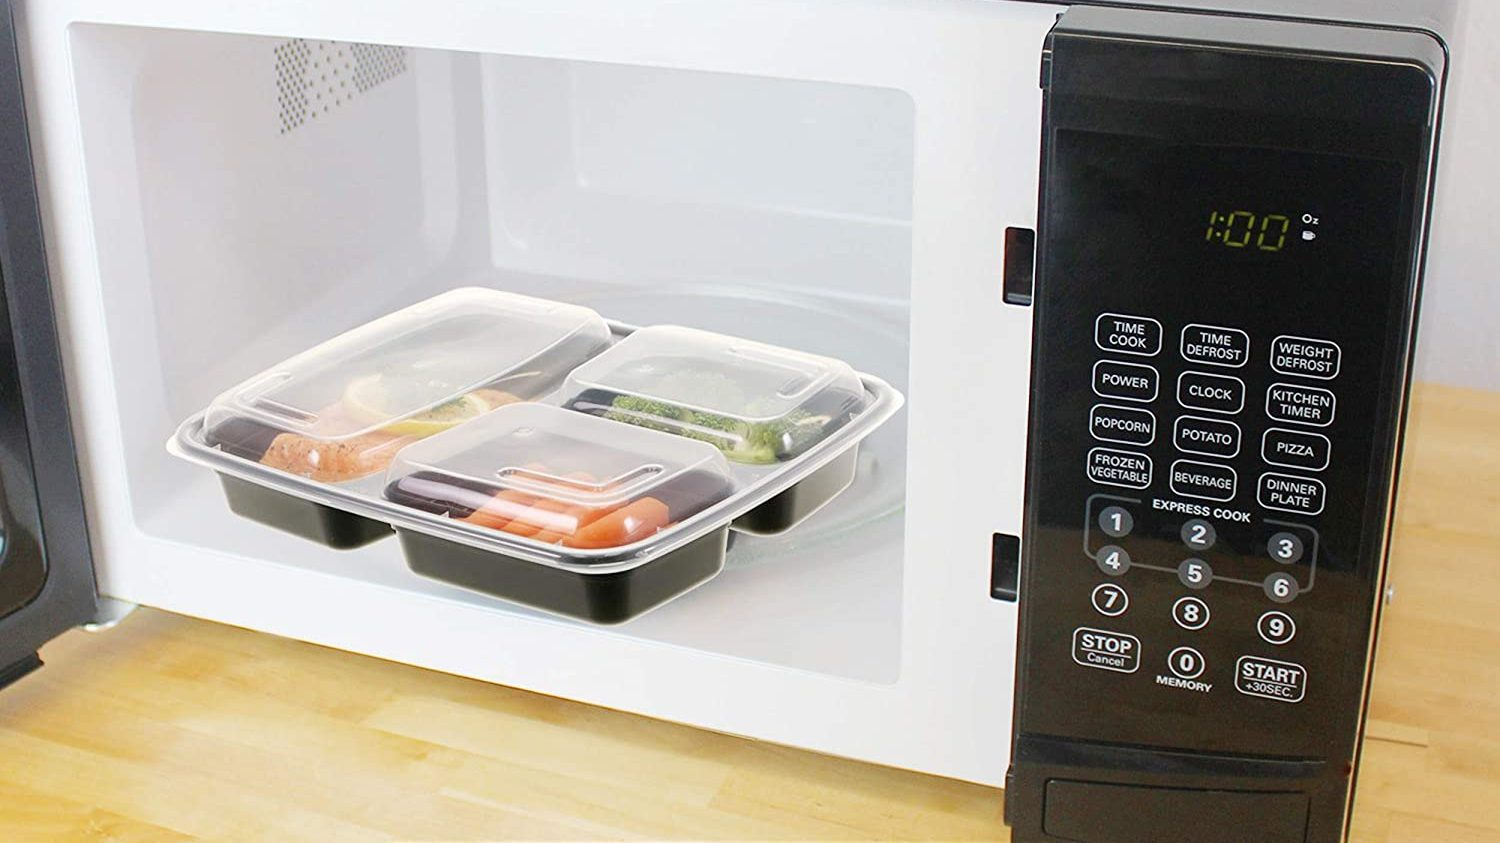 Best for Meal Preppers